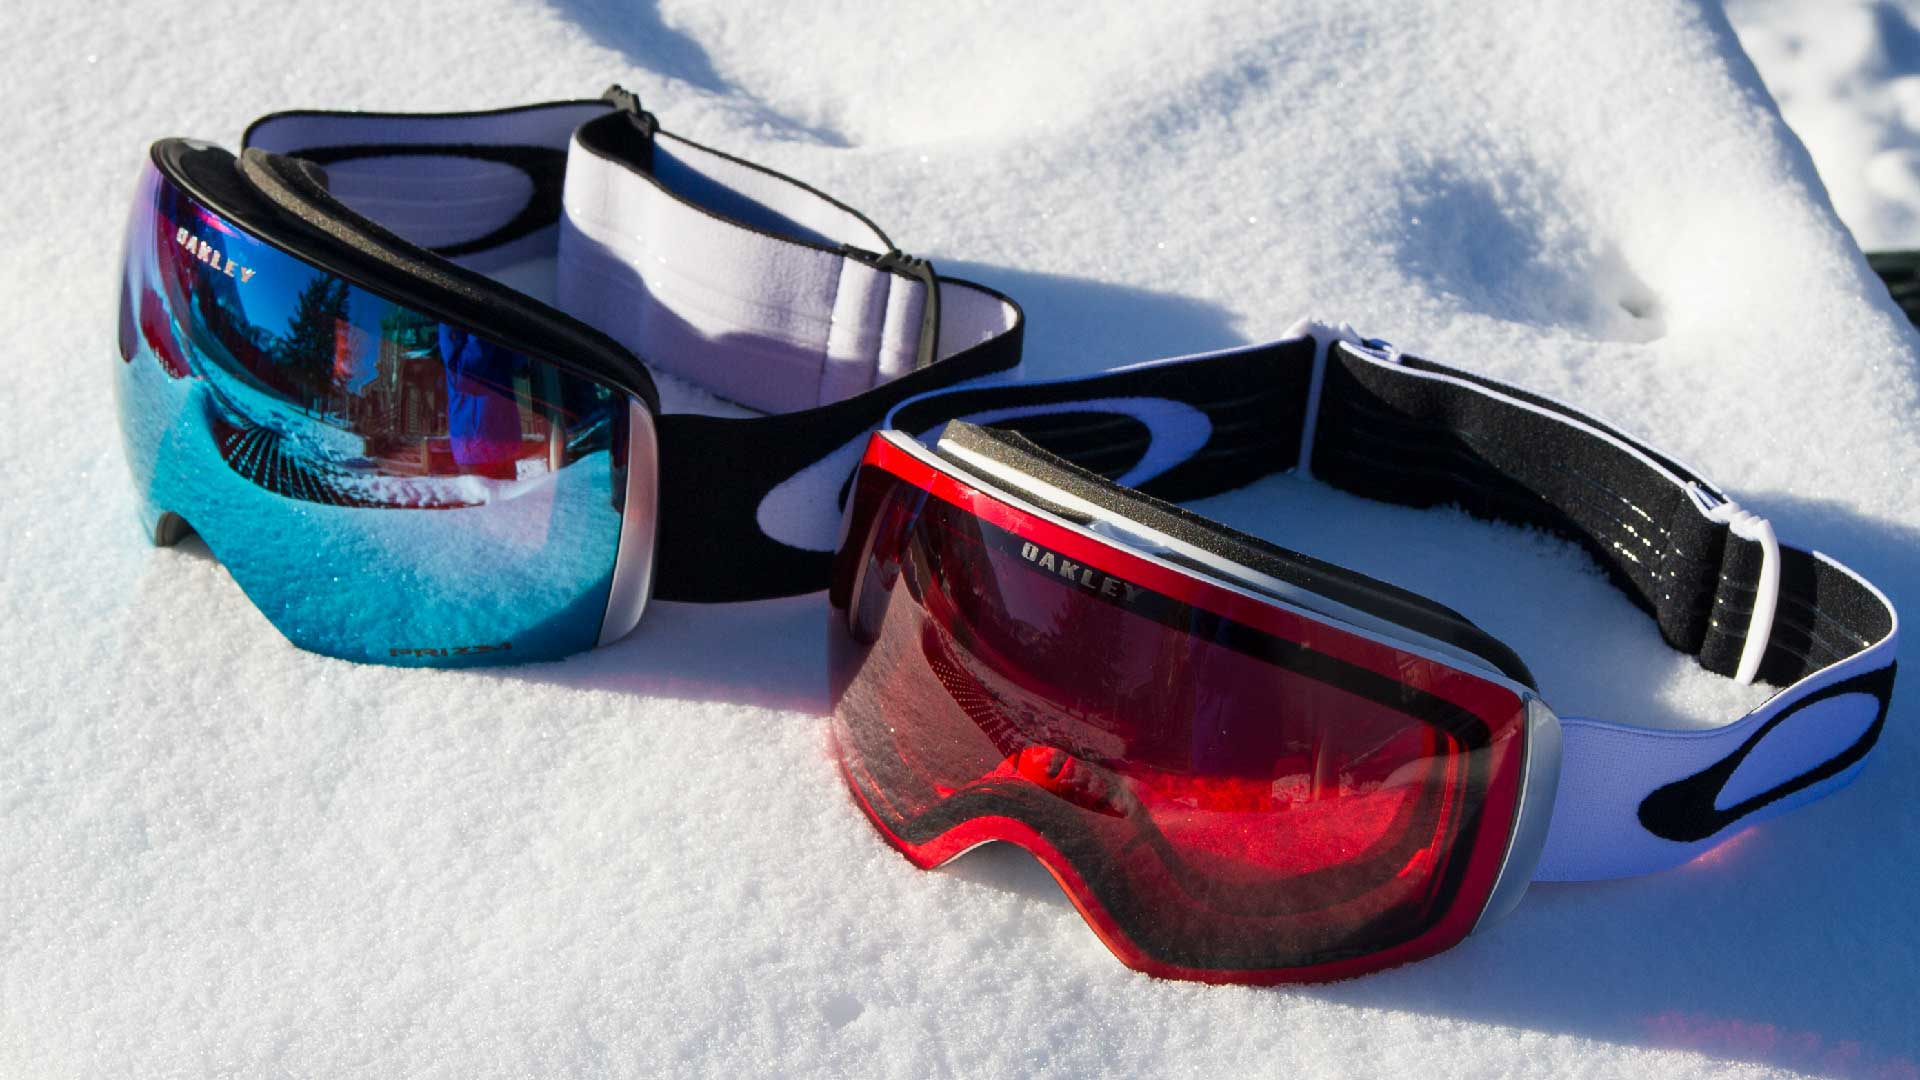 Oakley goggle lens color / tint guide | evo.